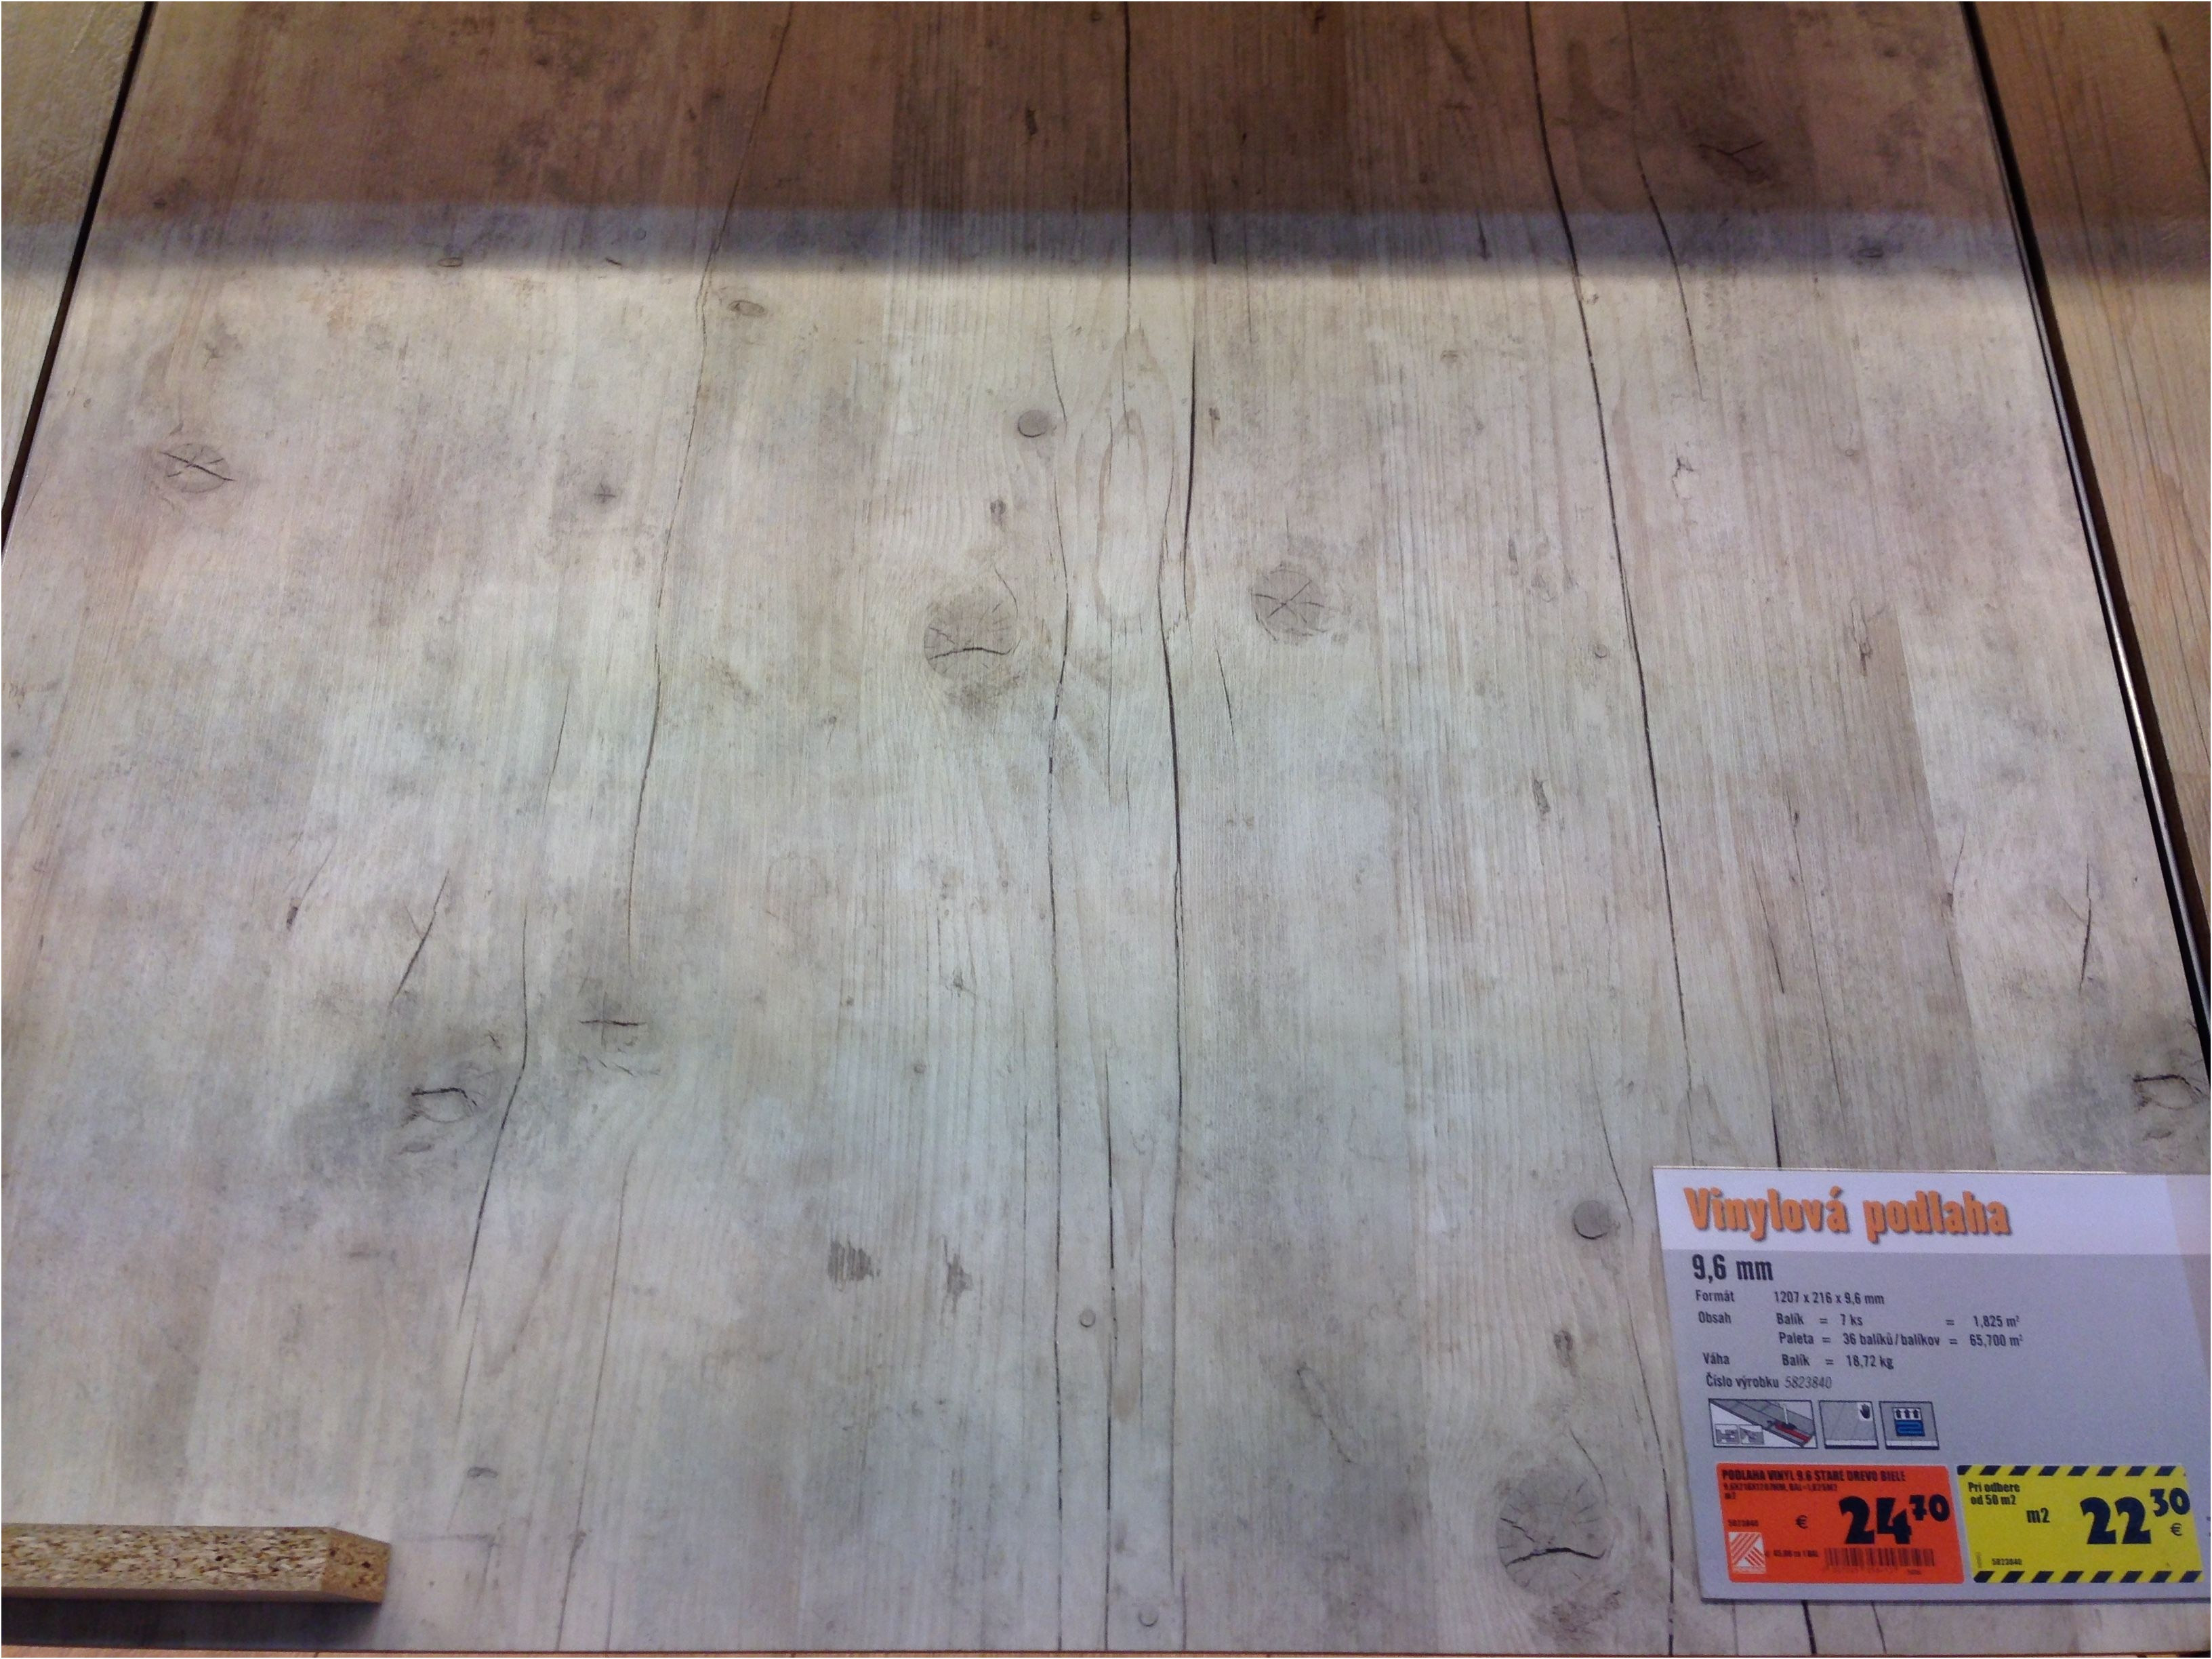 gray hardwood floor ideas of the wood maker page 6 wood wallpaper with how to laminate wood flooring unique pin by erik chudy egger ideas of grey laminate wood